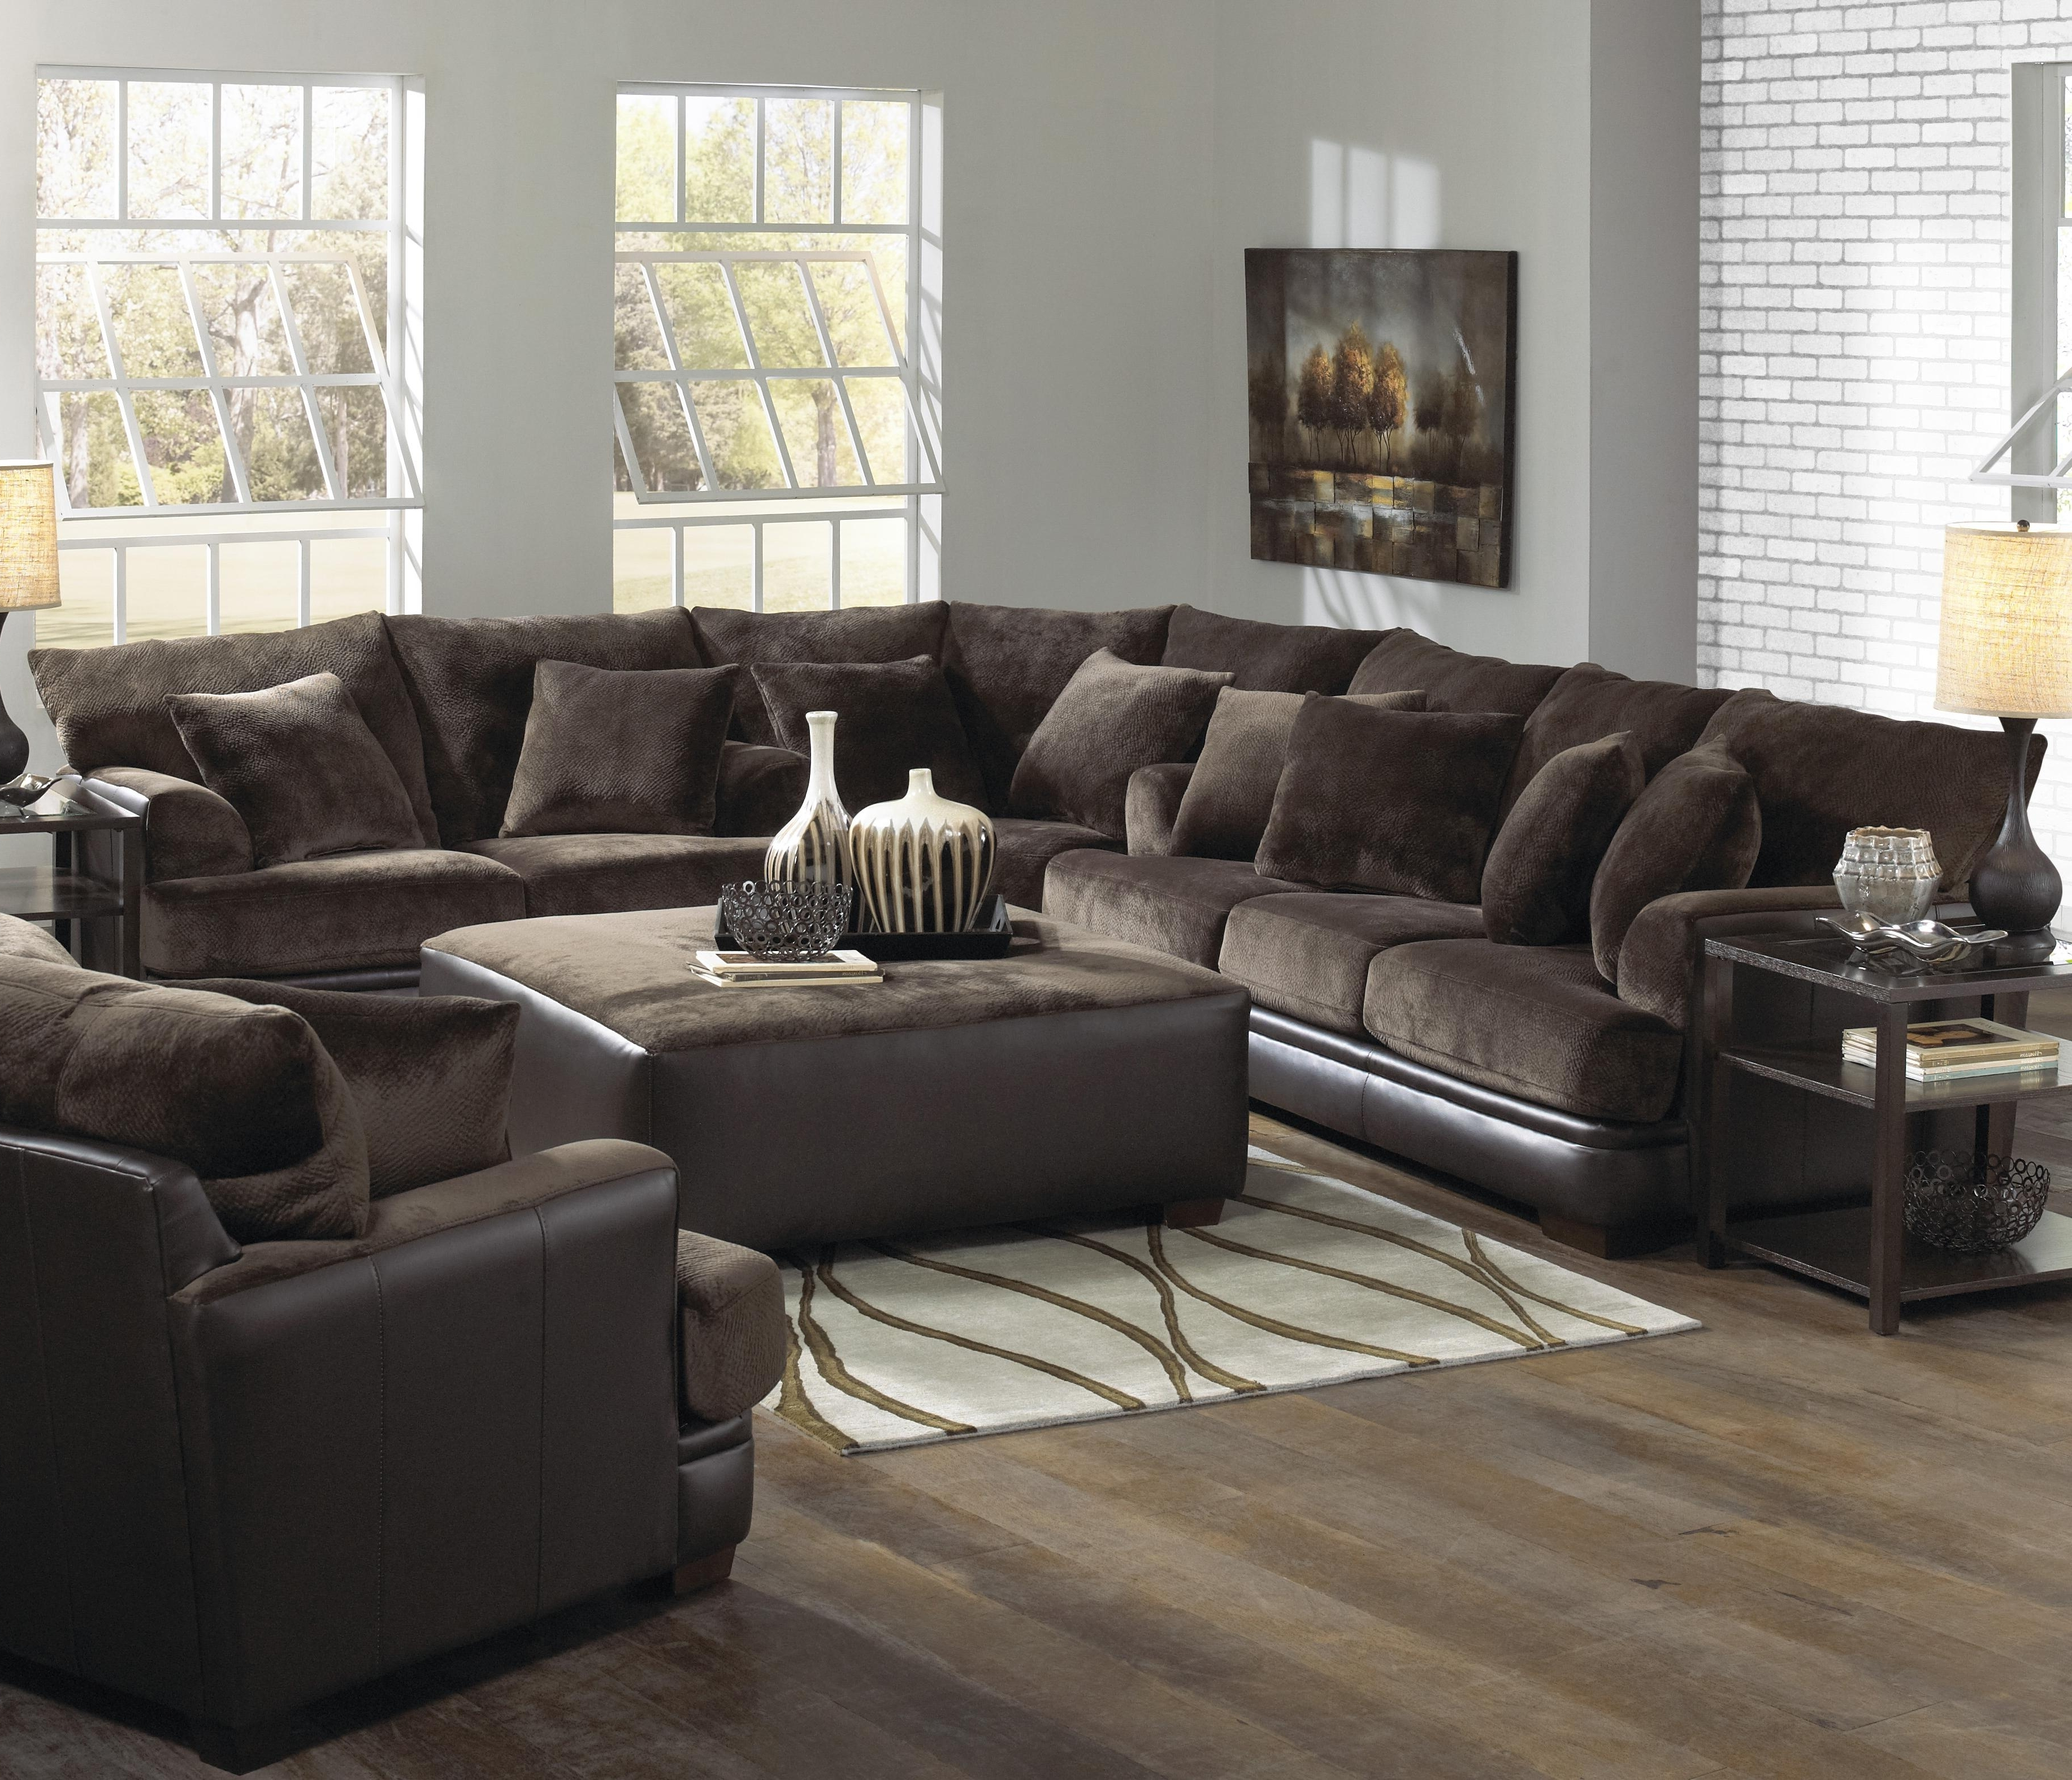 Big Sofas Wide Seat Sectional Small U Shaped Sectional Top Rated Within Most Recent Wide Sectional Sofas (View 4 of 20)